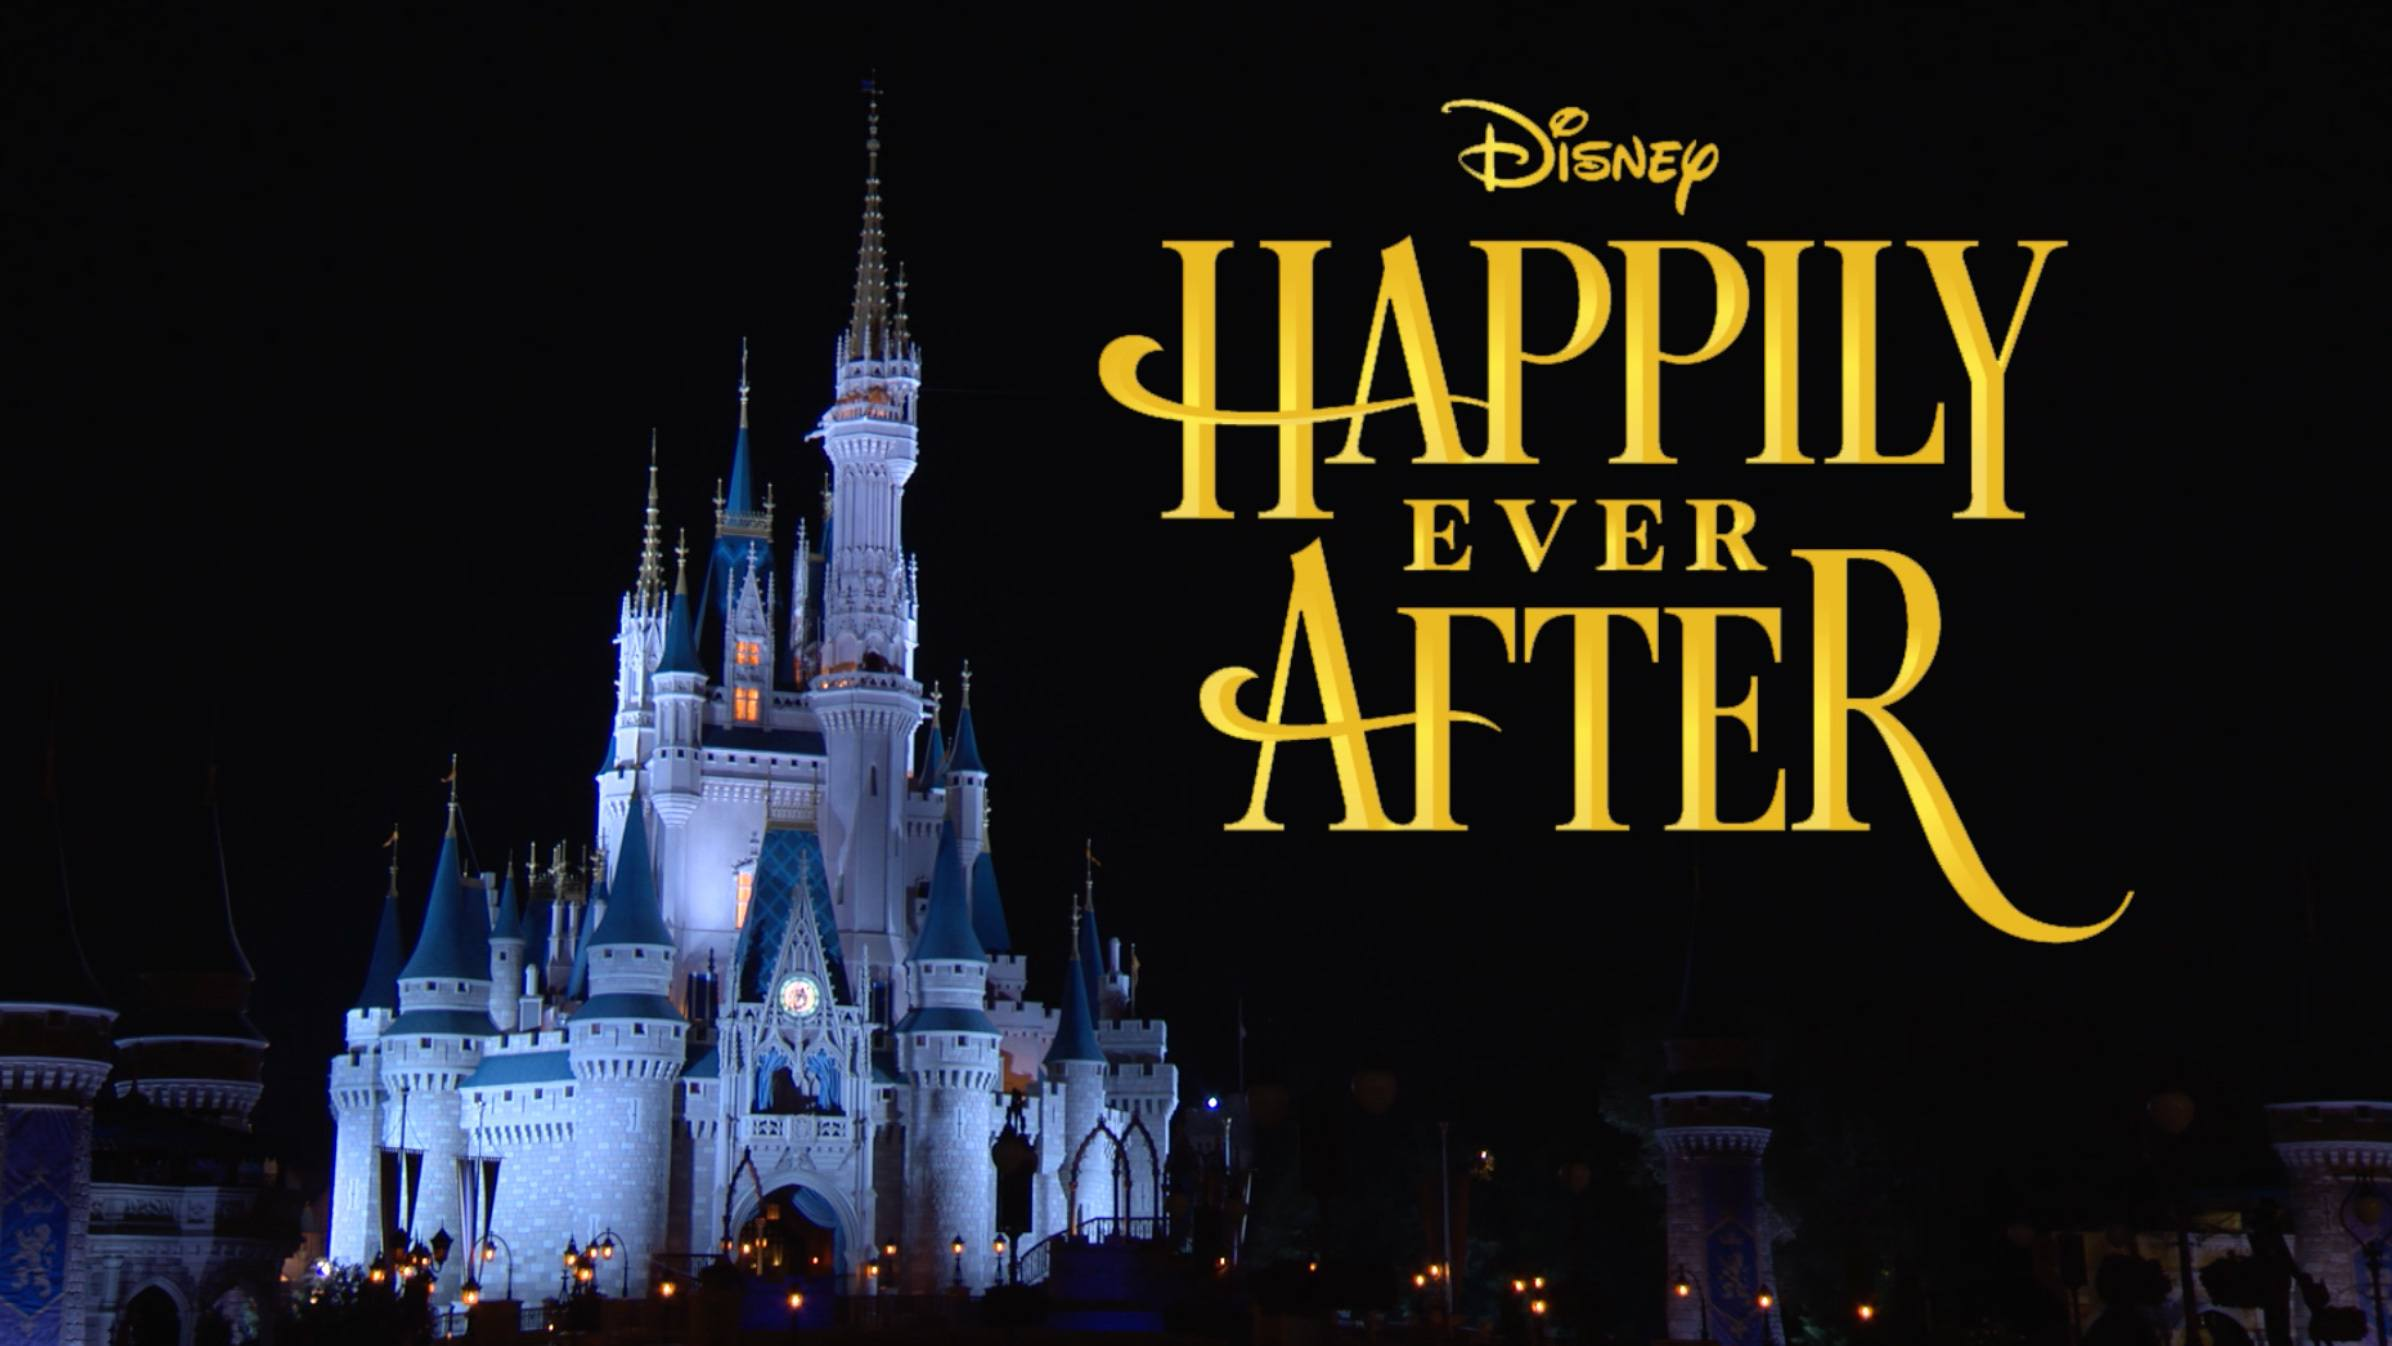 Happily Ever After - Magic Kingdom Fireworks